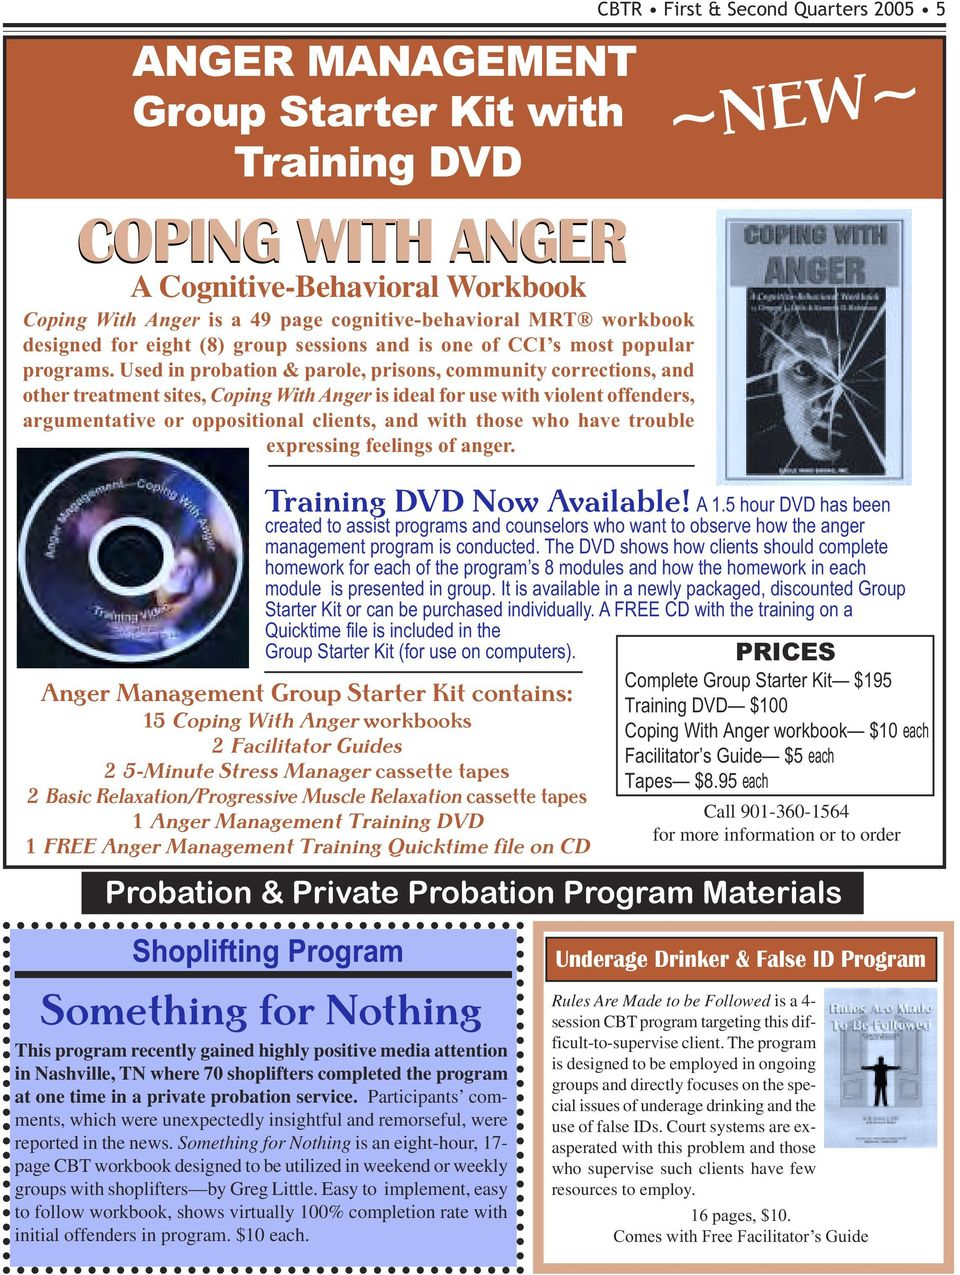 Used in probation & parole, prisons, community corrections, and other treatment sites, Coping With Anger is ideal for use with violent offenders, argumentative or oppositional clients, and with those